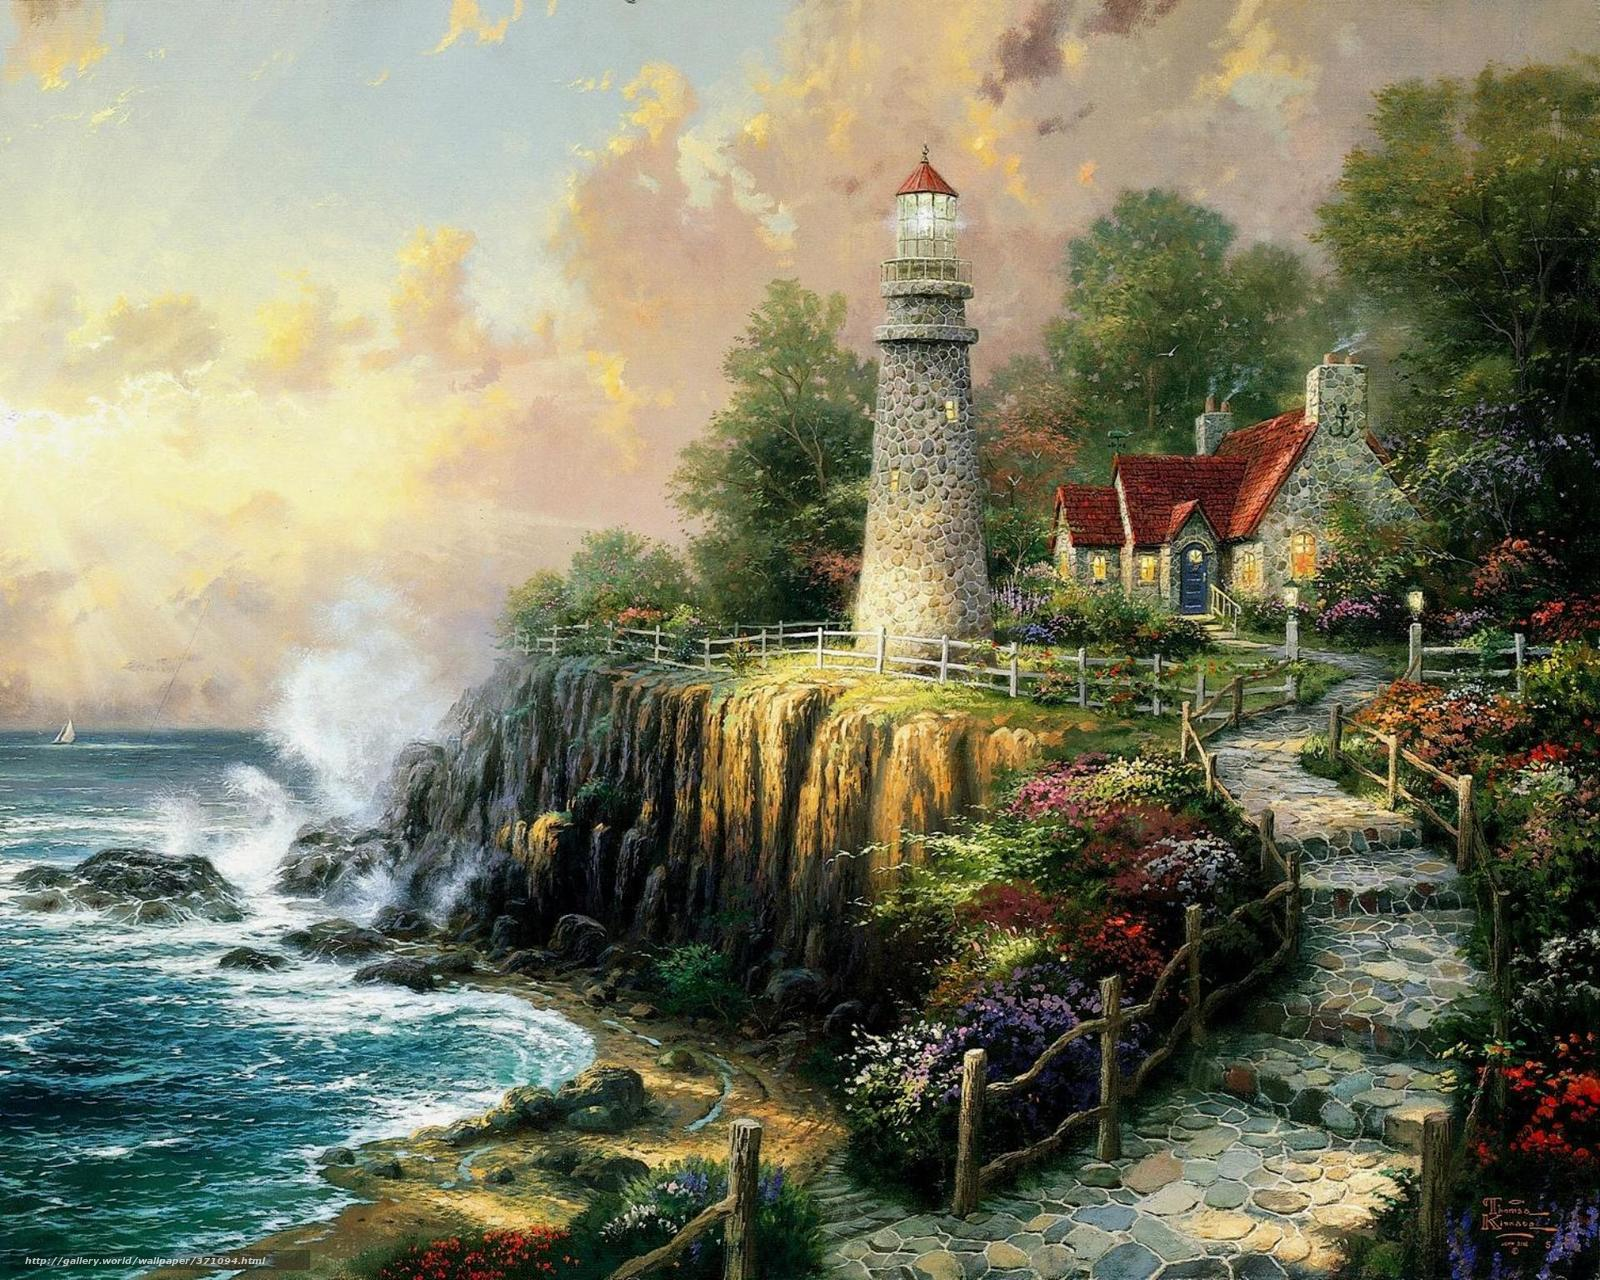 Thomas Kinkade Wallpaper and Screensavers - WallpaperSafari